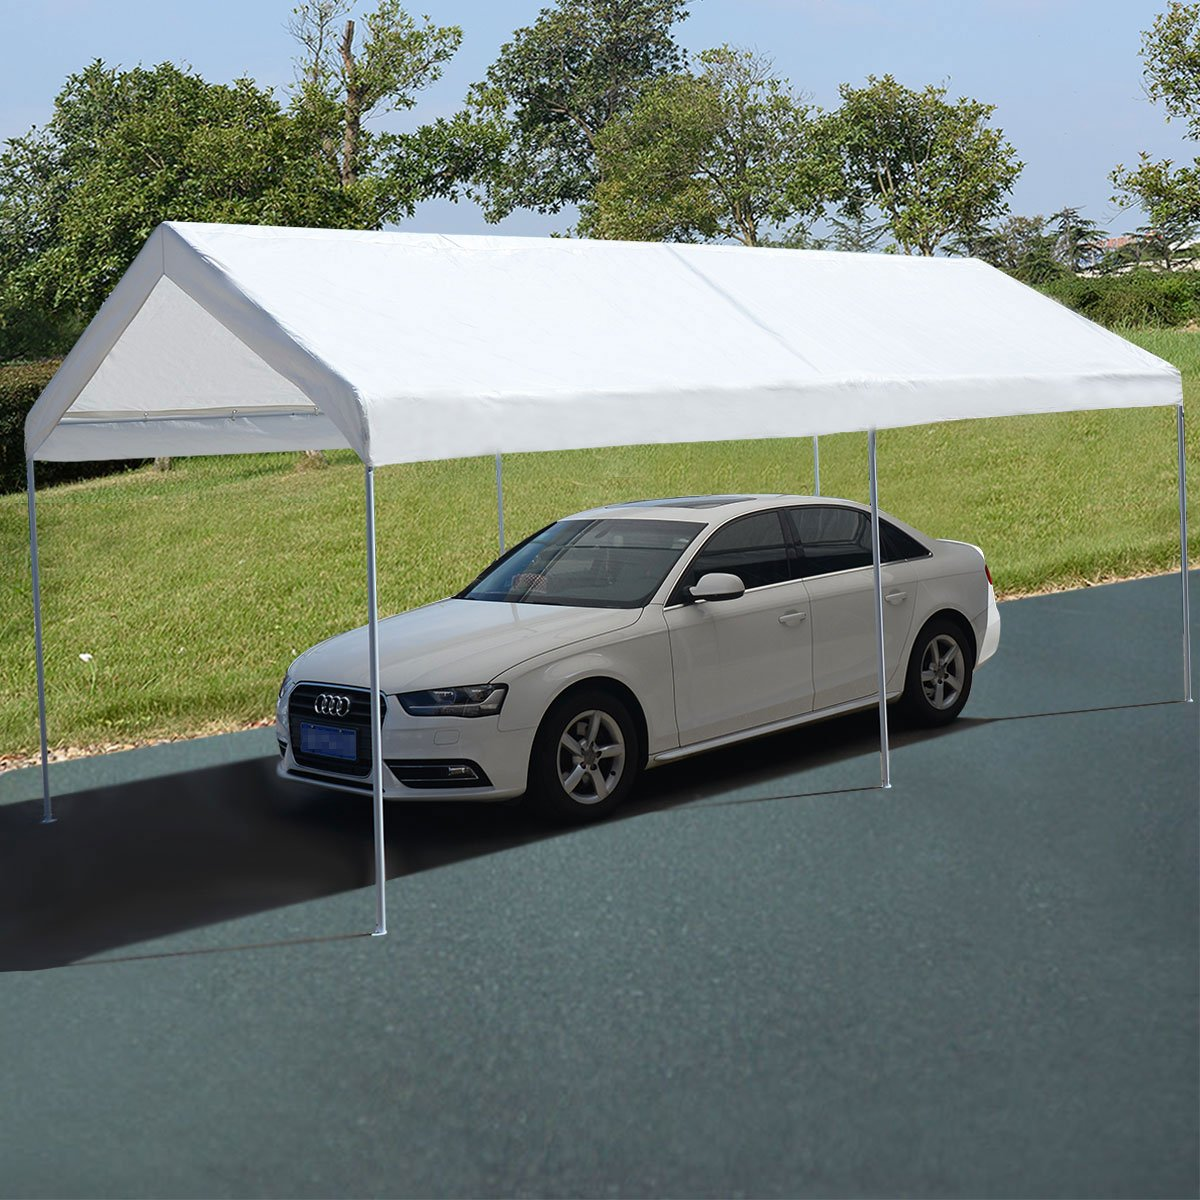 Costway Canopy/Carport/Marquee/Shelter/Tent White Gazebo Party Garden Outdoor Waterproof 3M x 6M